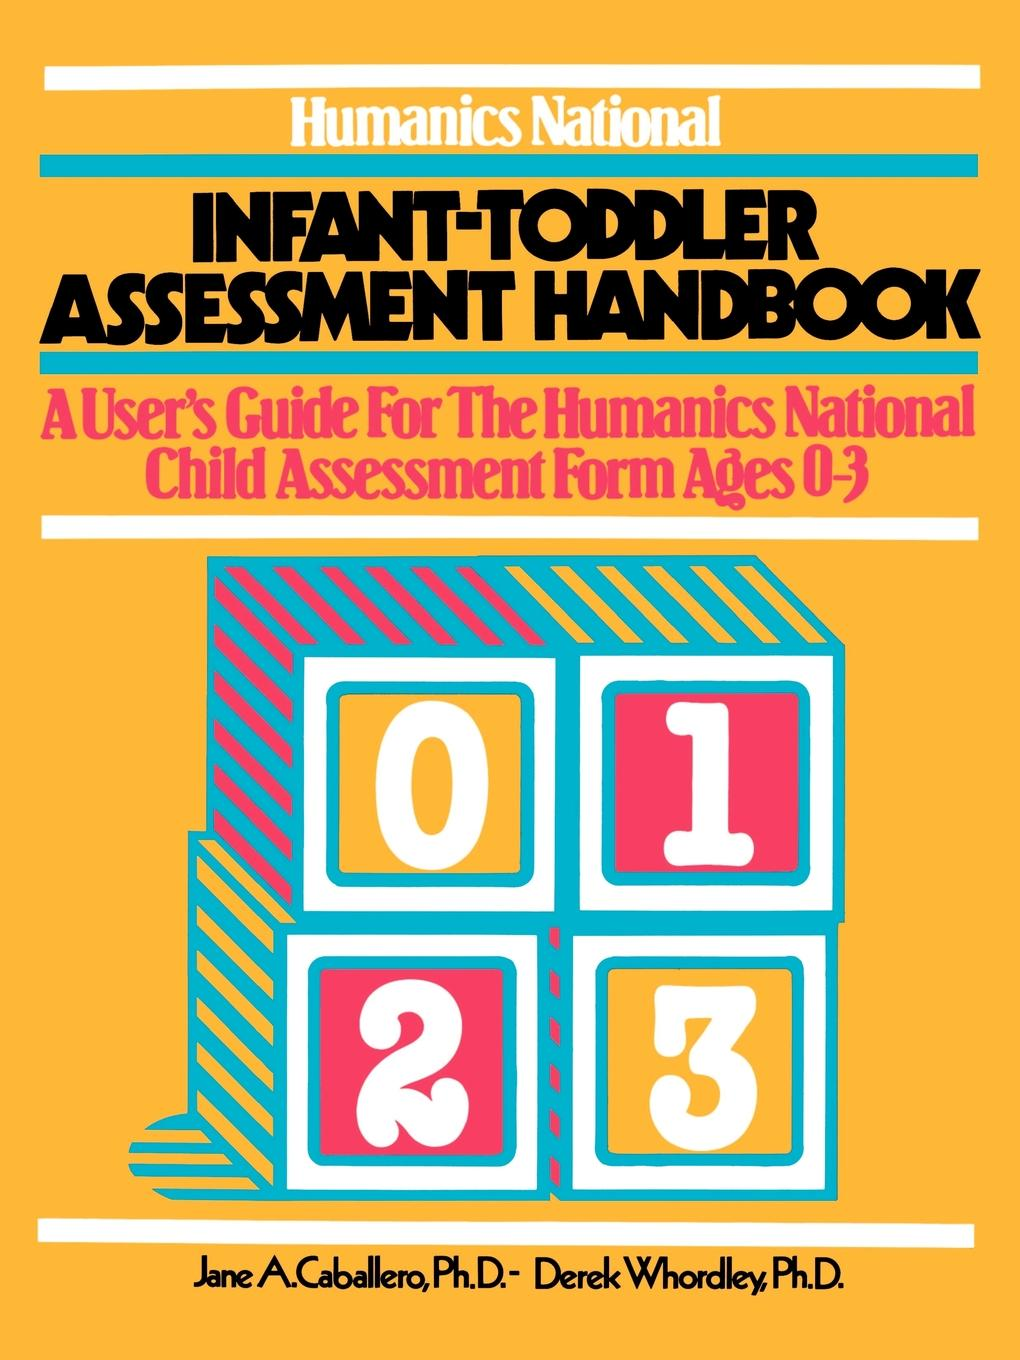 Humanics National Infant-Toddler Assessment Handbook By: Jane A. Caballero, Ph.D.